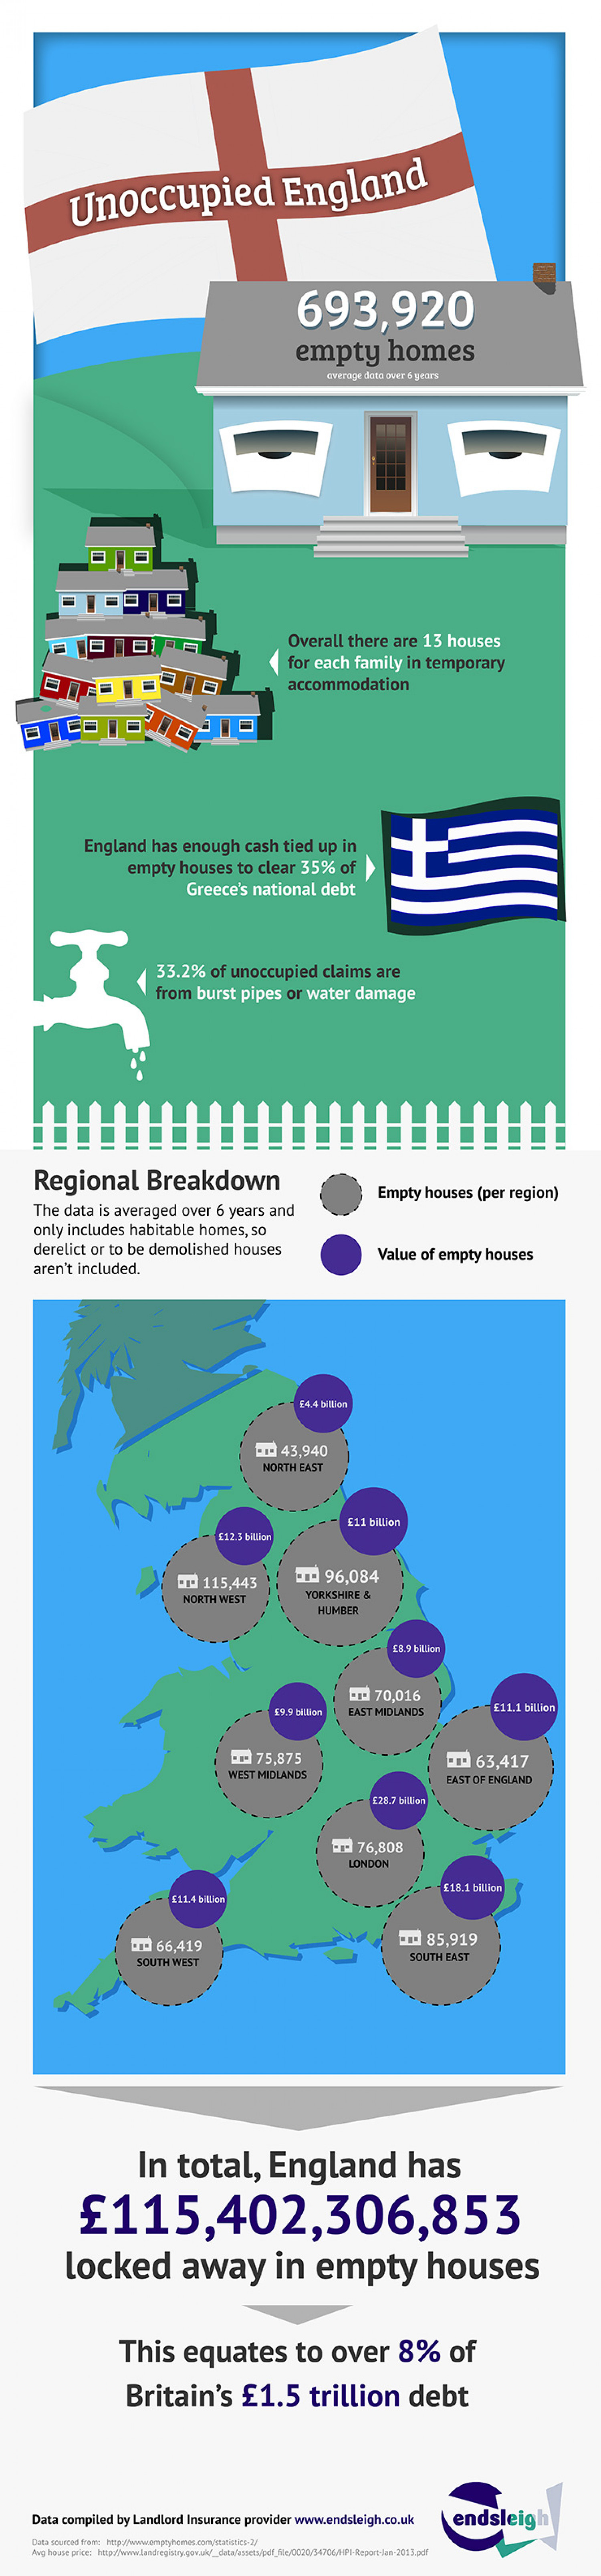 Unoccupied England Infographic